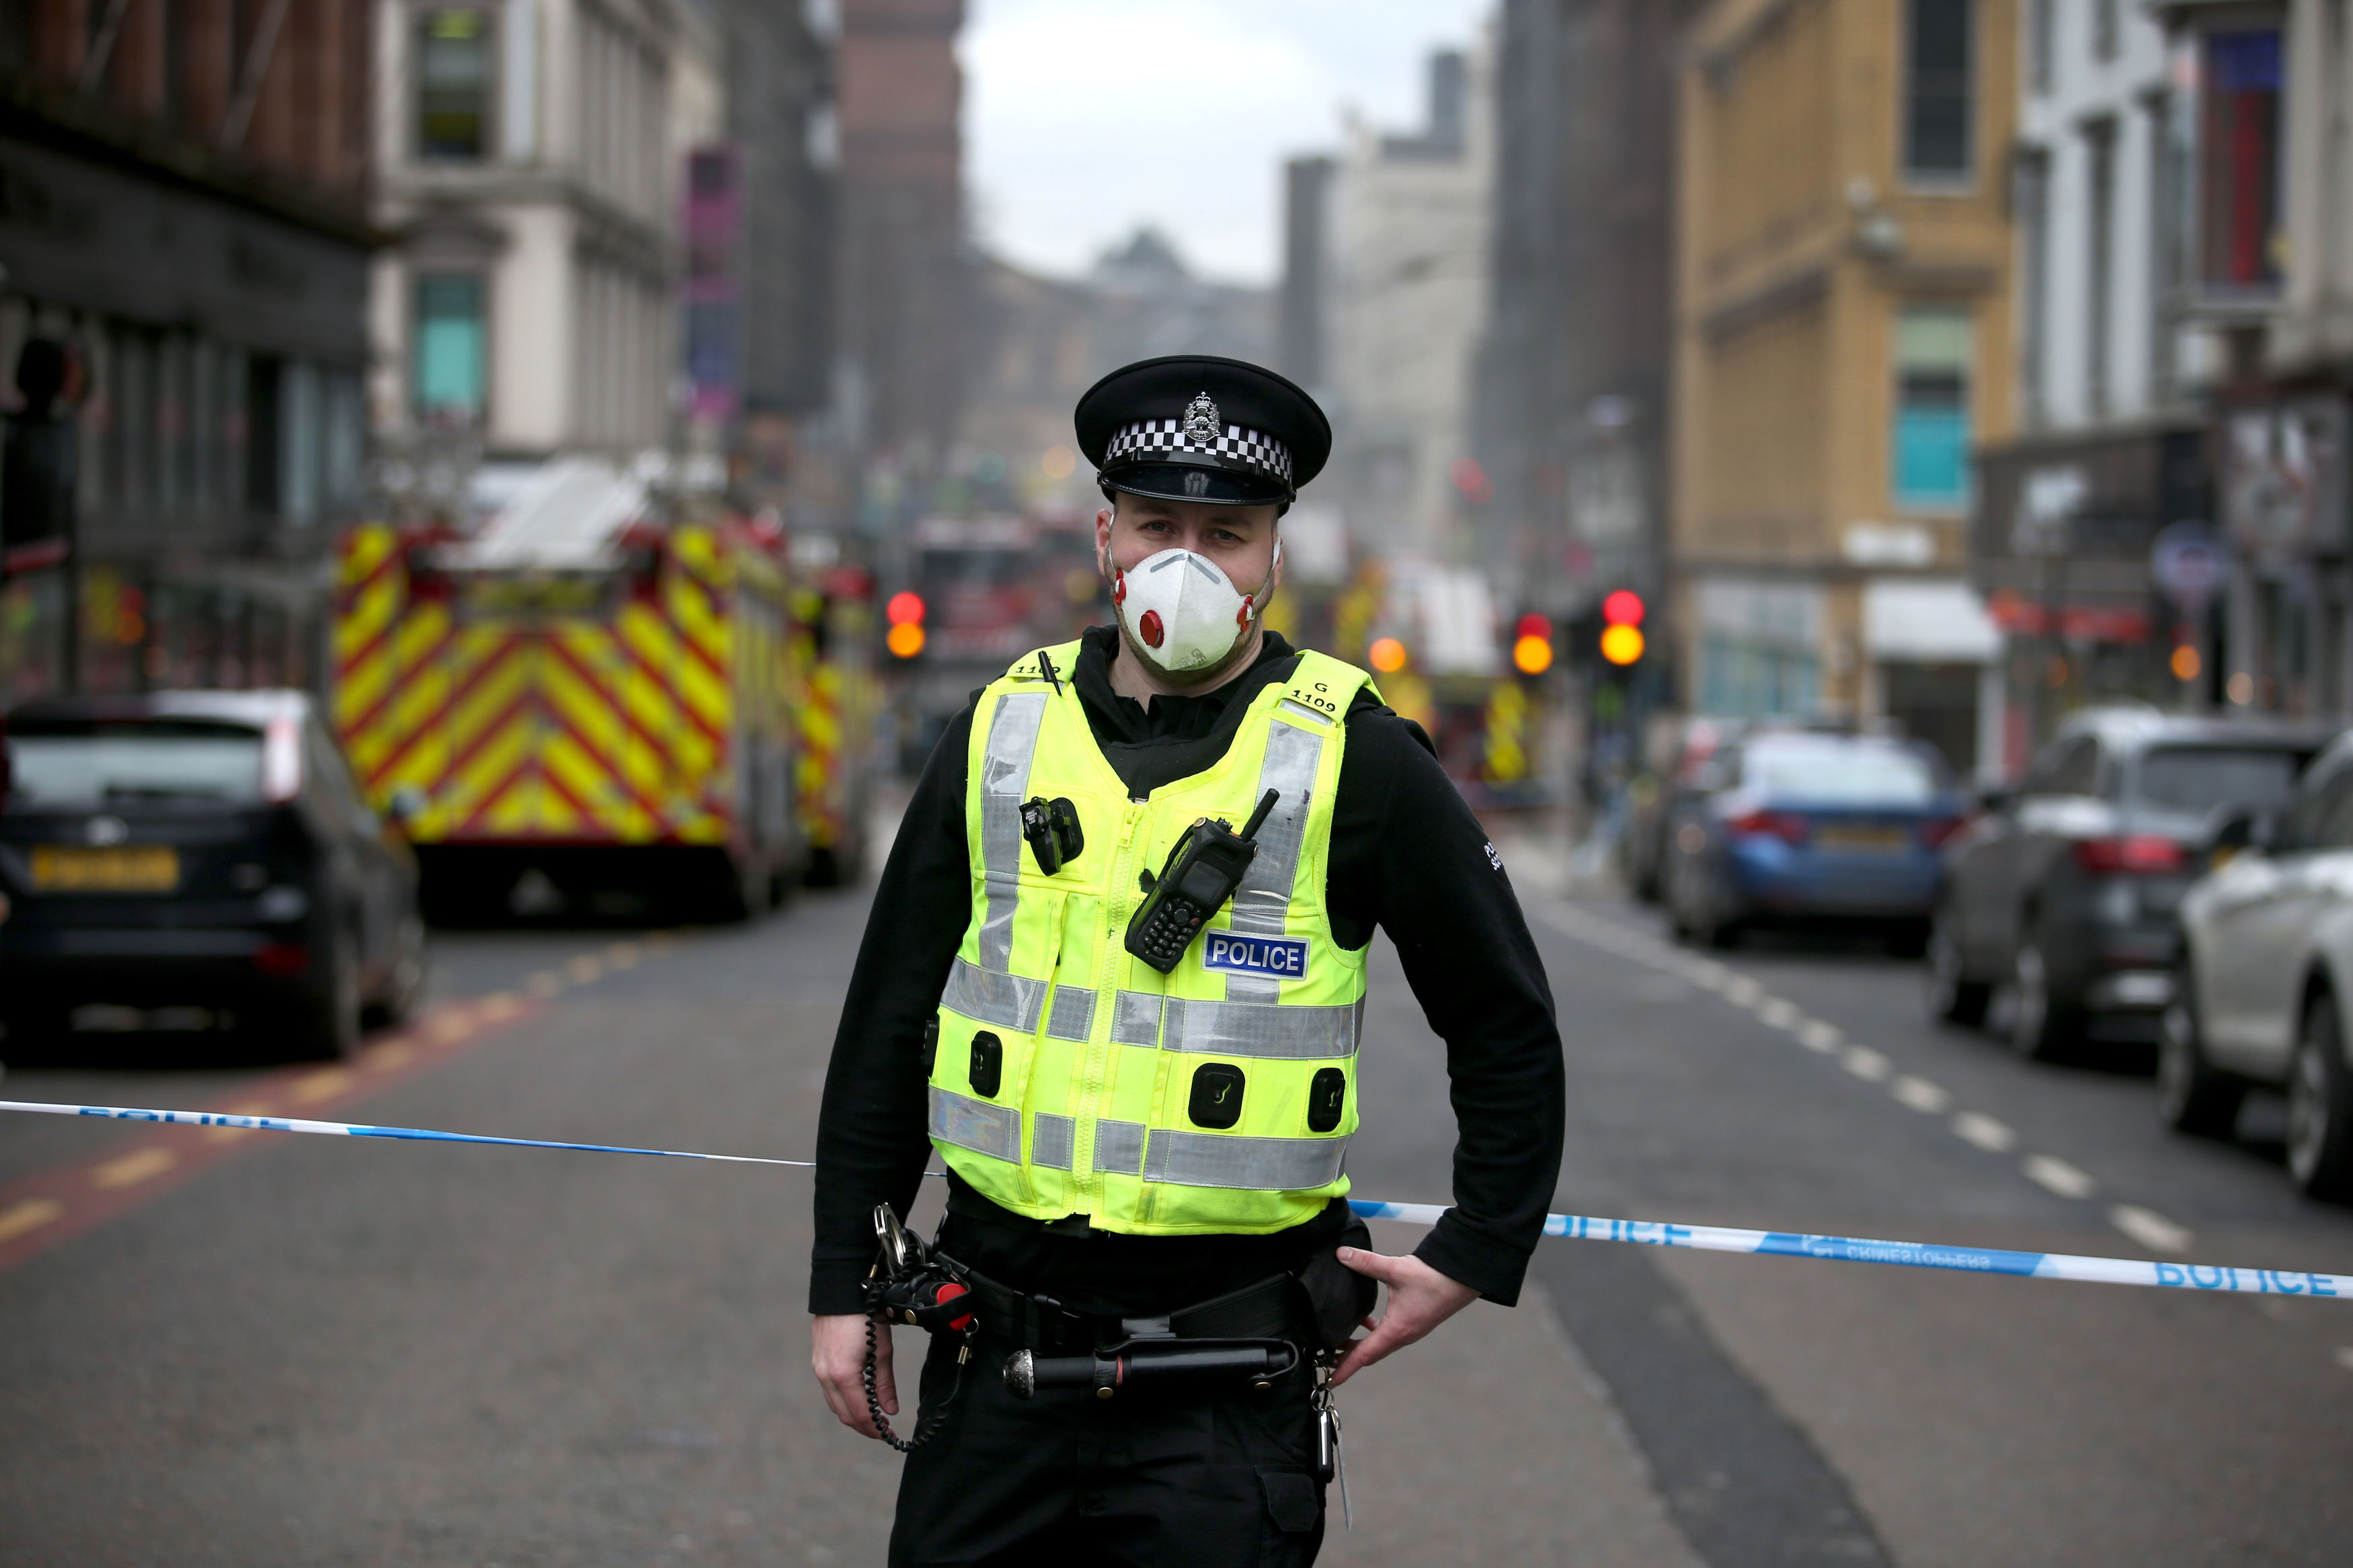 Firefighters say they'll stay at Glasgow blaze 'as long as it takes'